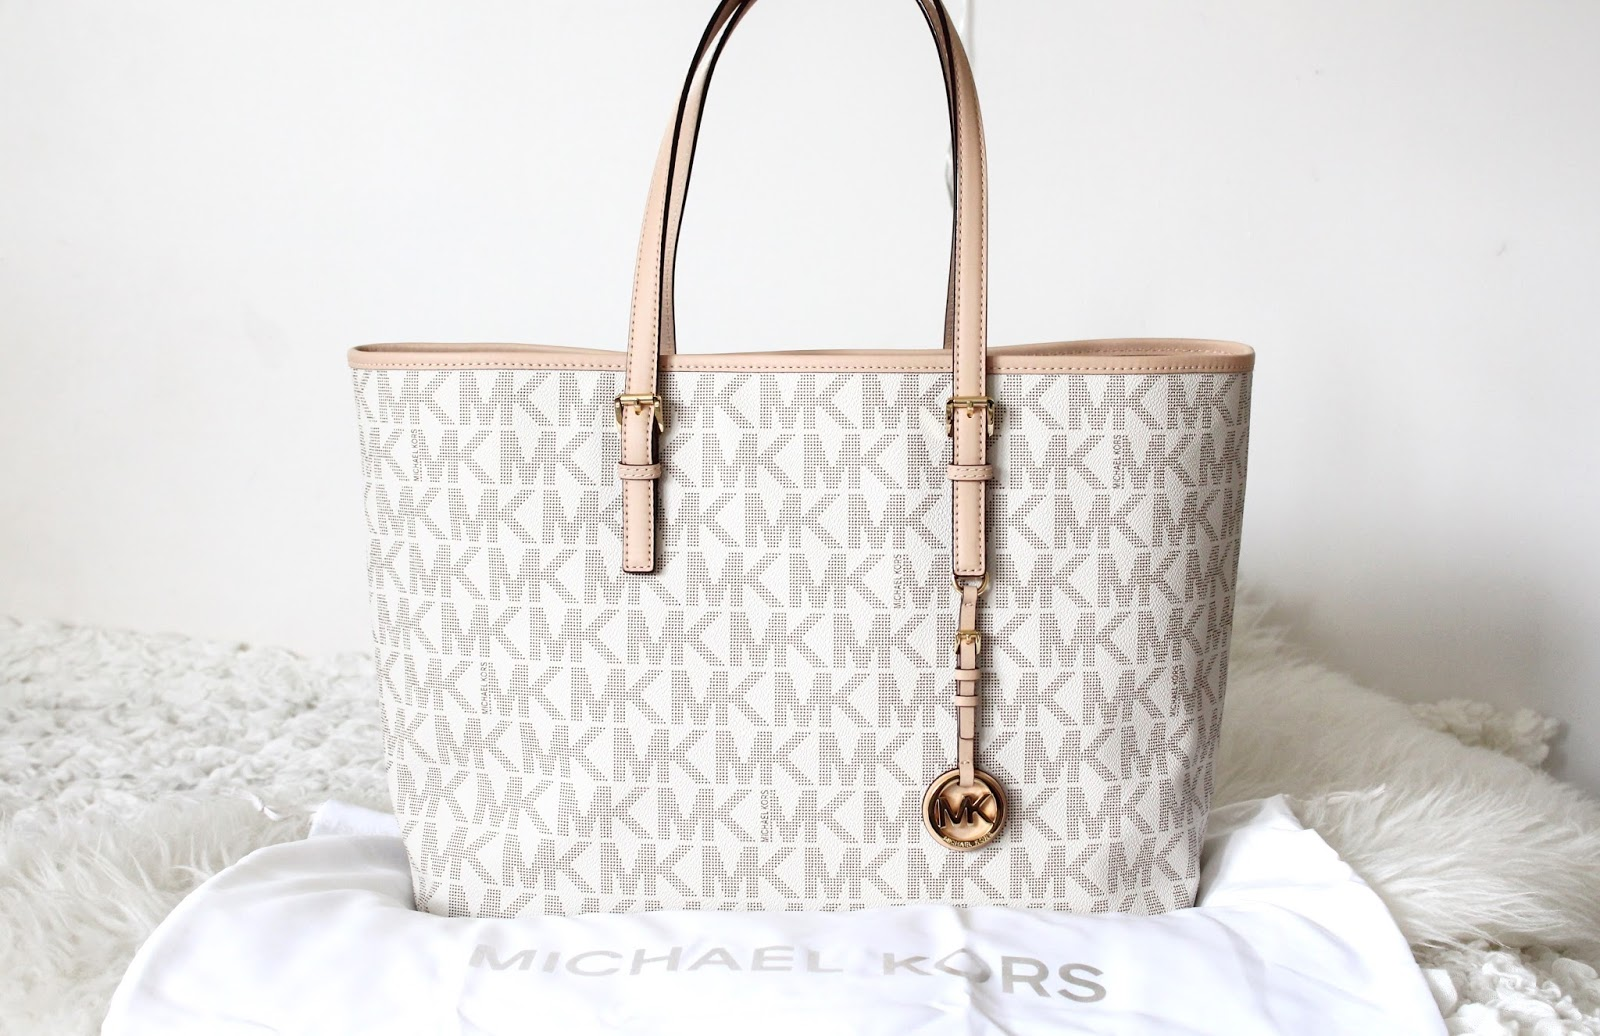 Michael Kors Laukku Alennus : Emmi s wardrobe michael kors jet set multifunction travel